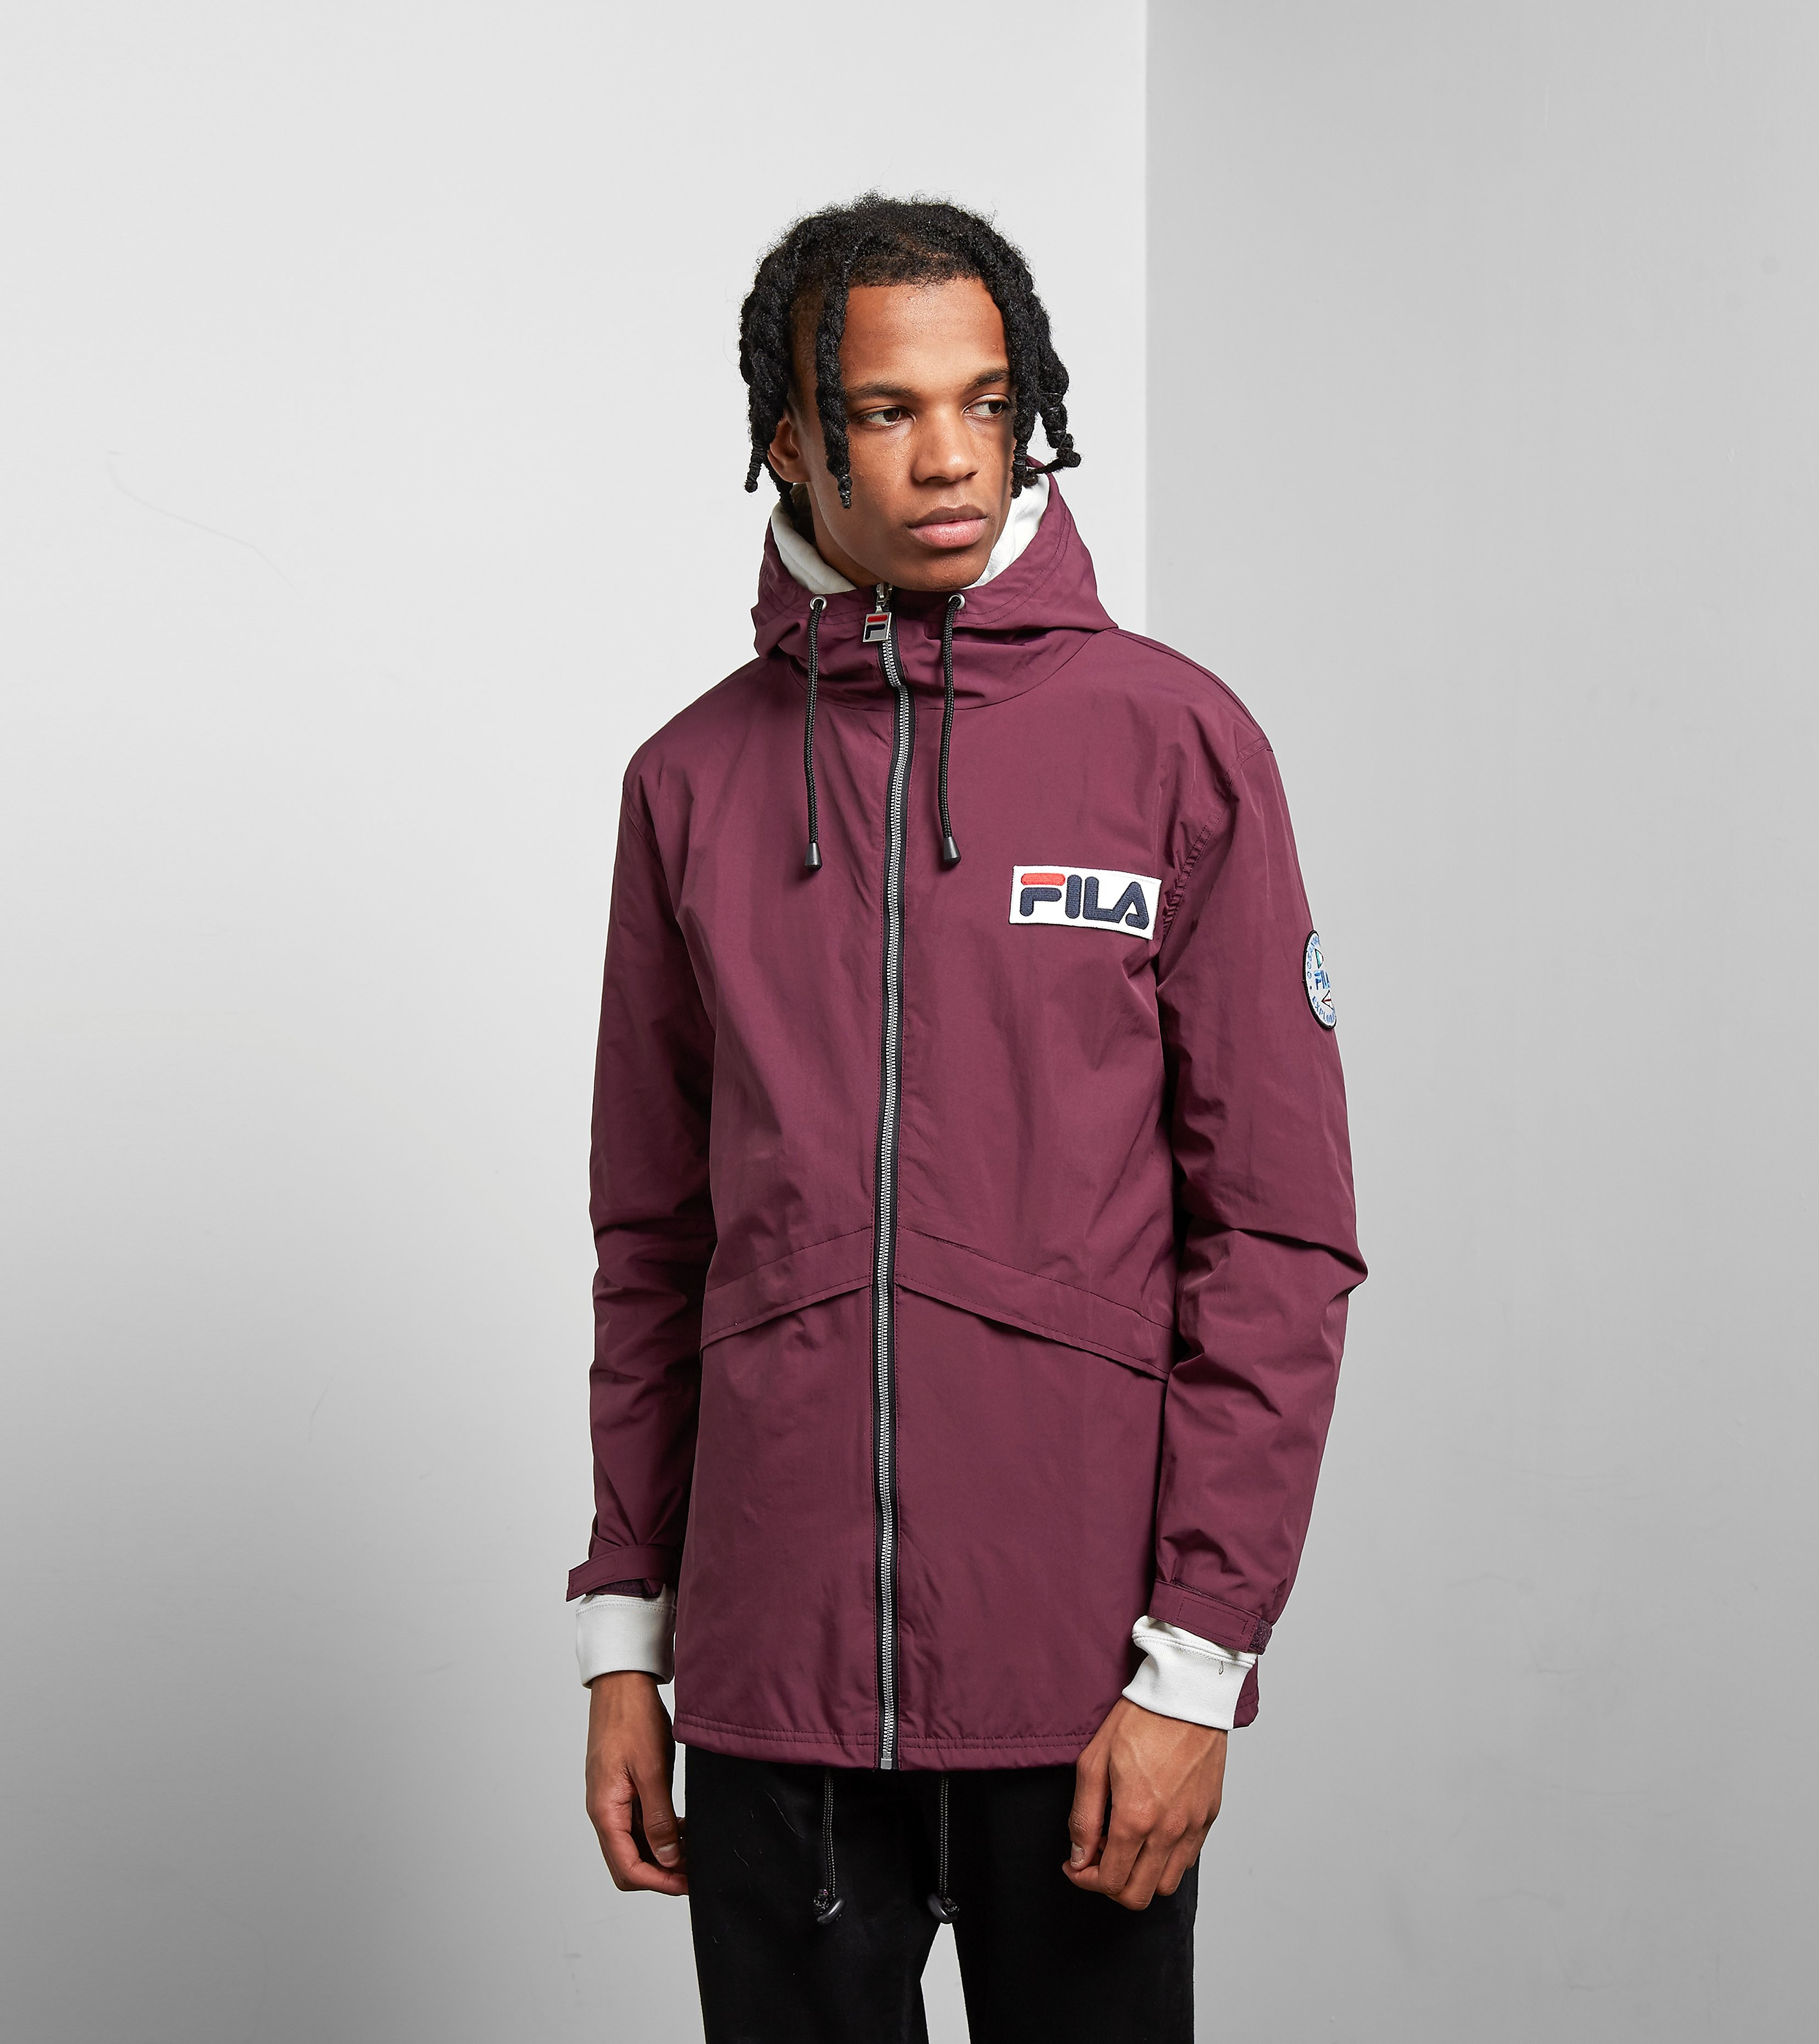 Fila Papillon Jacket - size? Exclusive